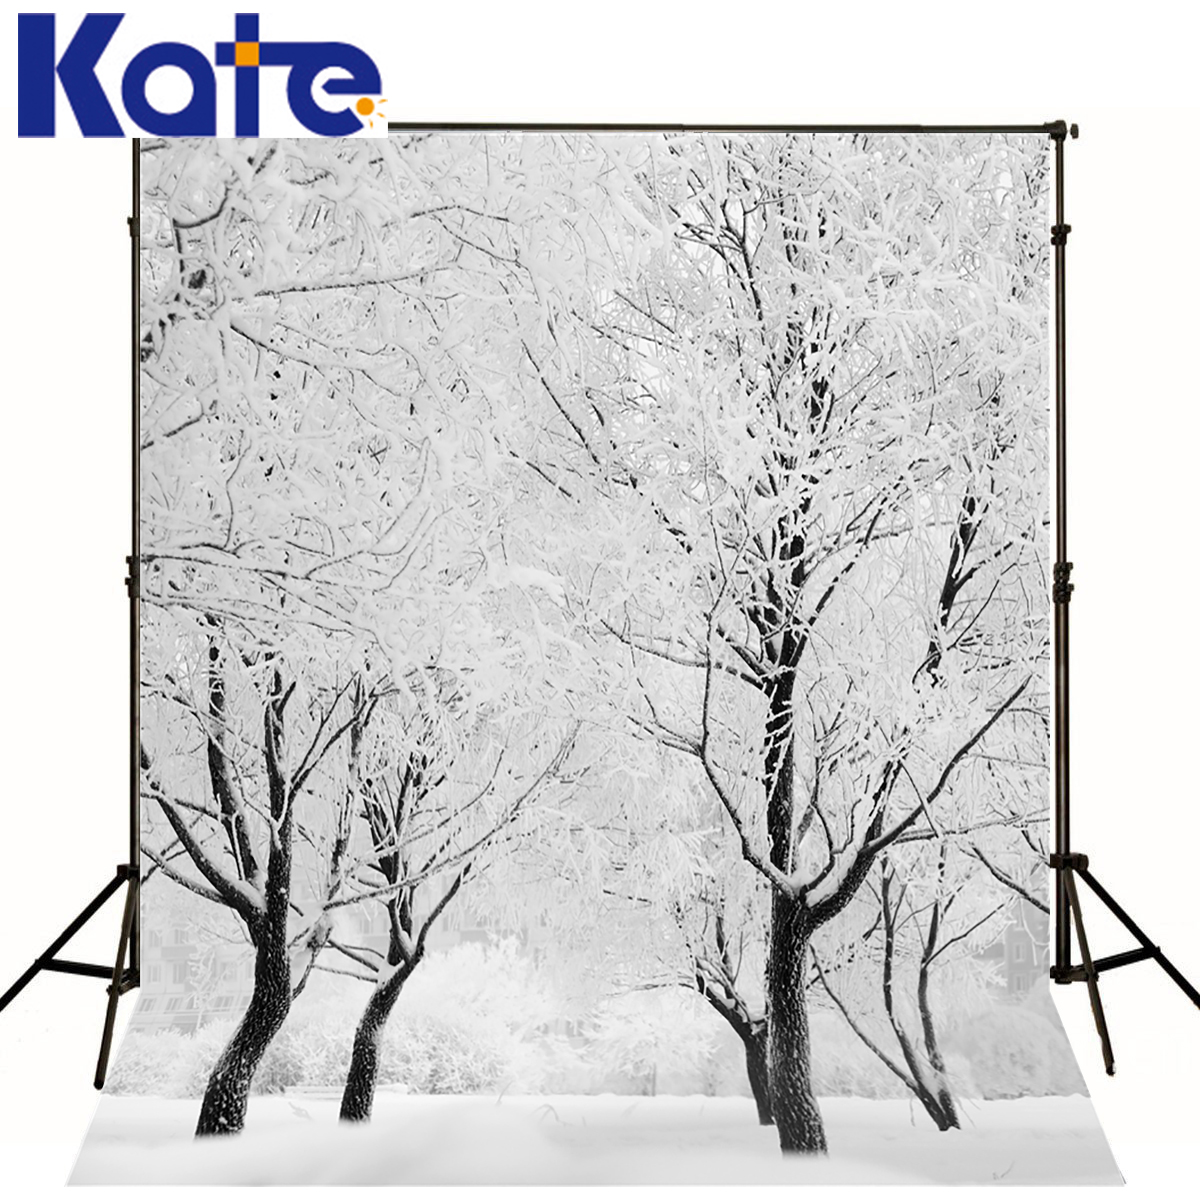 KATE Photography Backdrop Winter White Snow Forest  Scenery Photography Background Branch Snowstorm Backdrop Photography Studio kate photography backdrop winter snow tree castle scenery photography background lighting spot dream backdrops studio